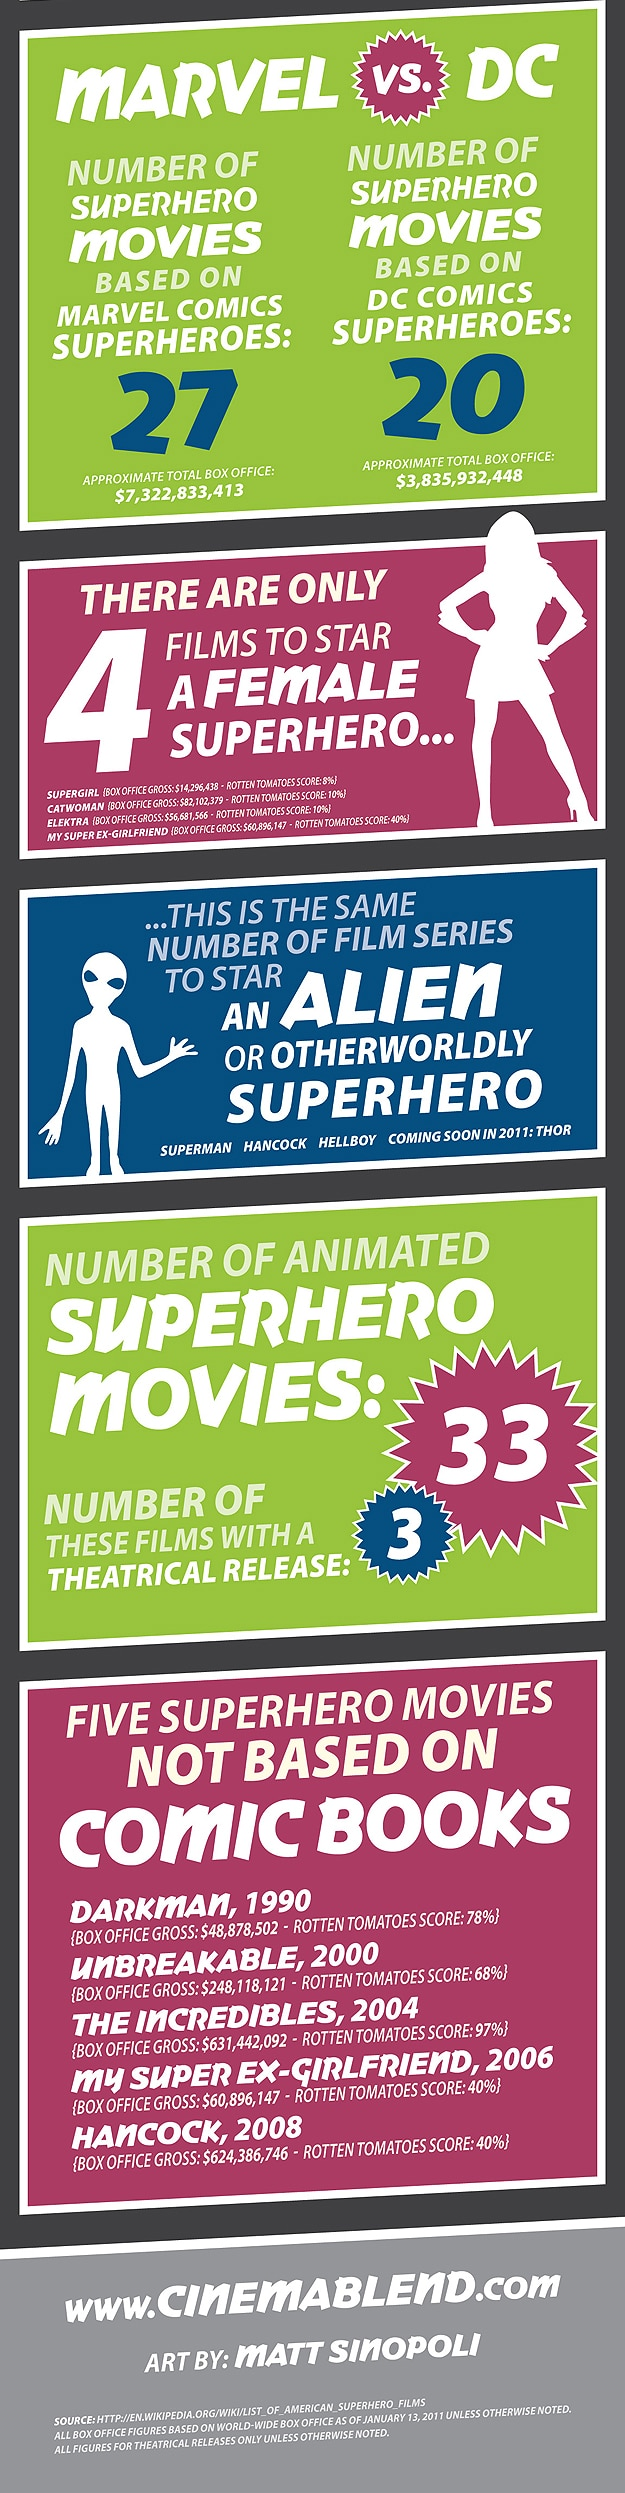 Superhero Movies Made Most Money